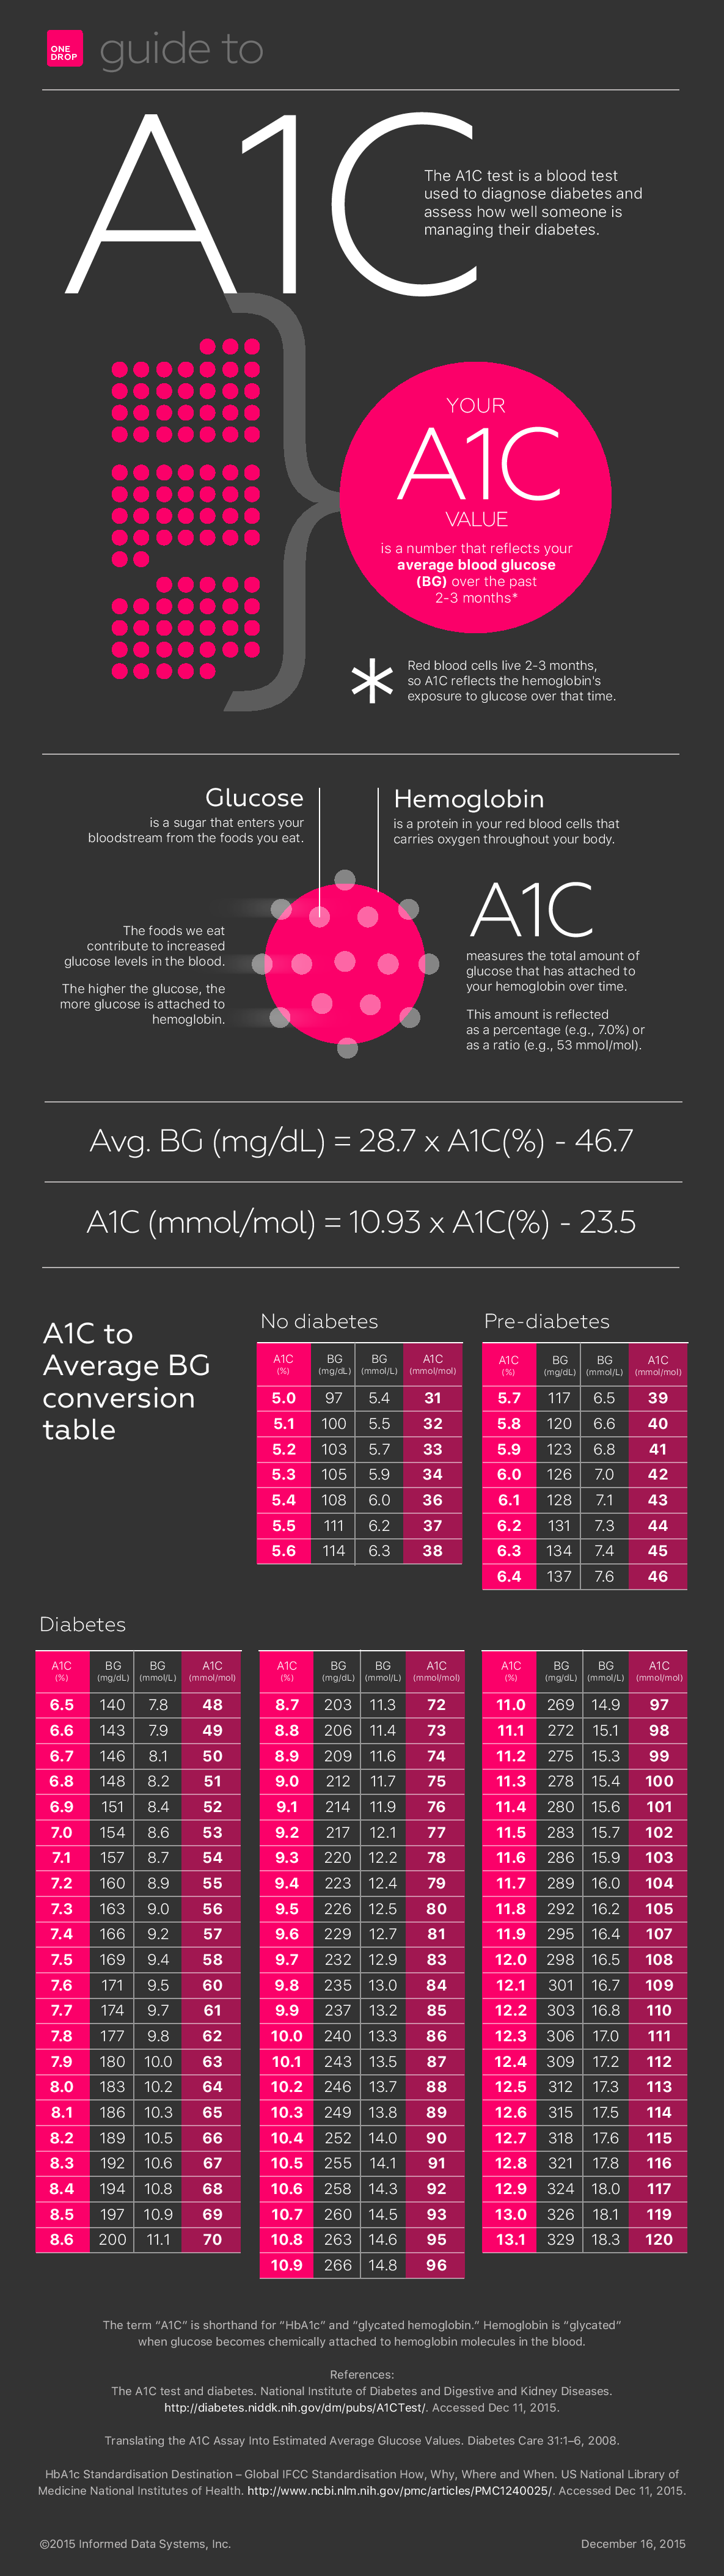 what is a1c - a1c guide - guide to a1c - a1c infographic - what is normal a1c - what is diabetic a1c - what is prediabetic a1c